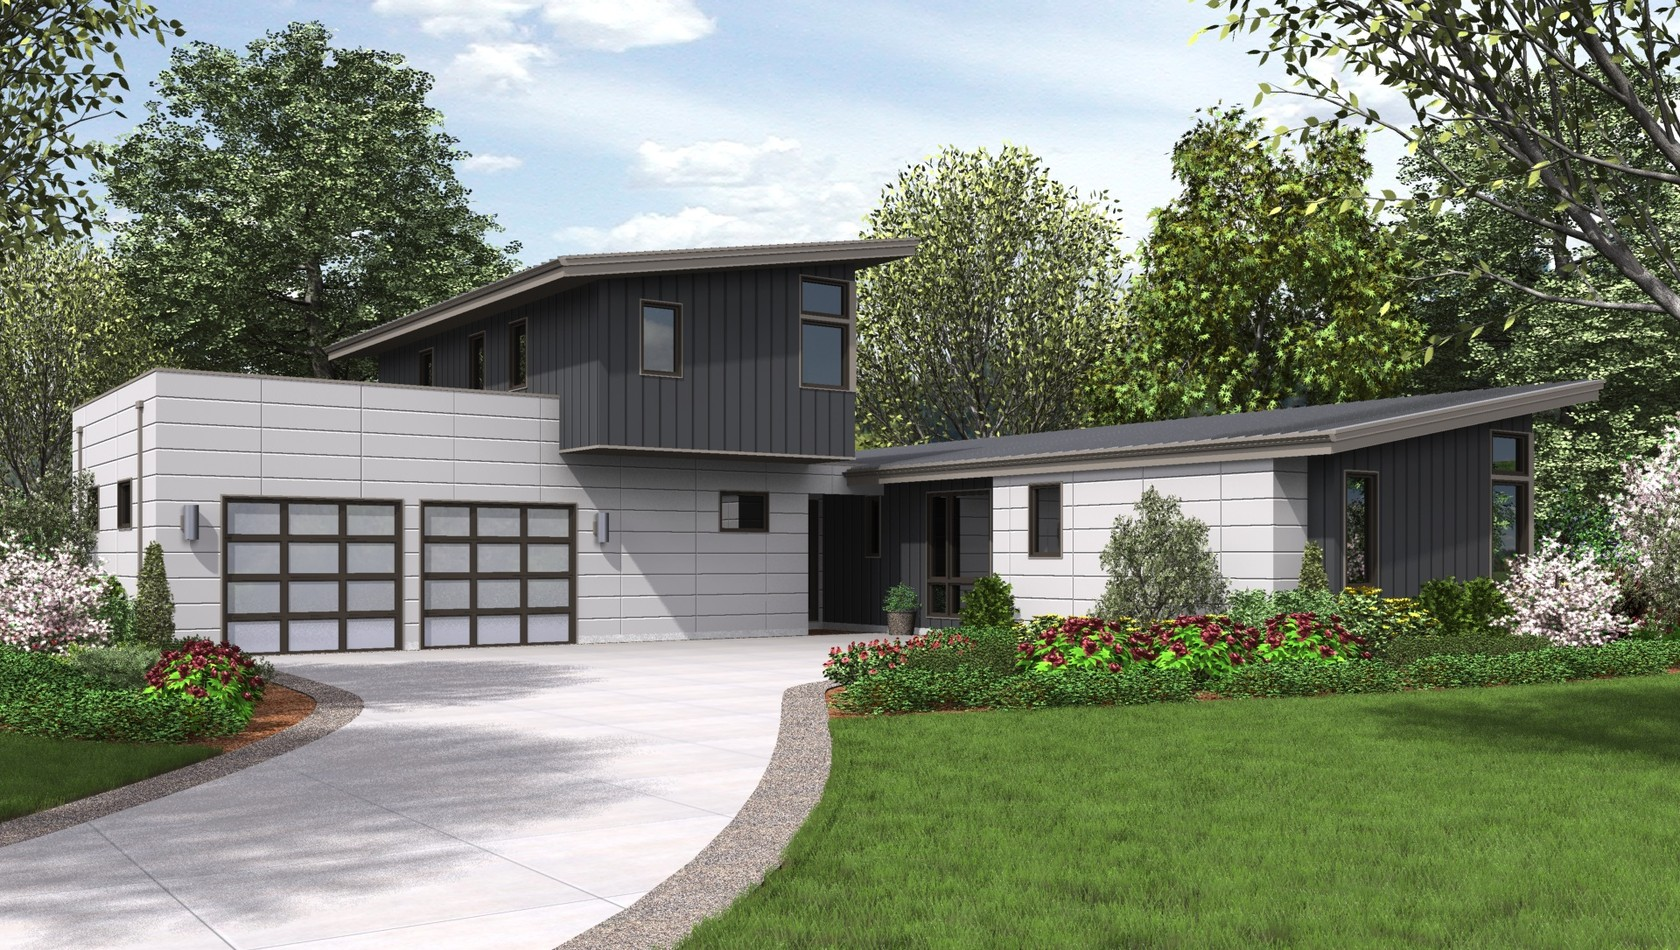 Main image for house plan 22207: The Albright